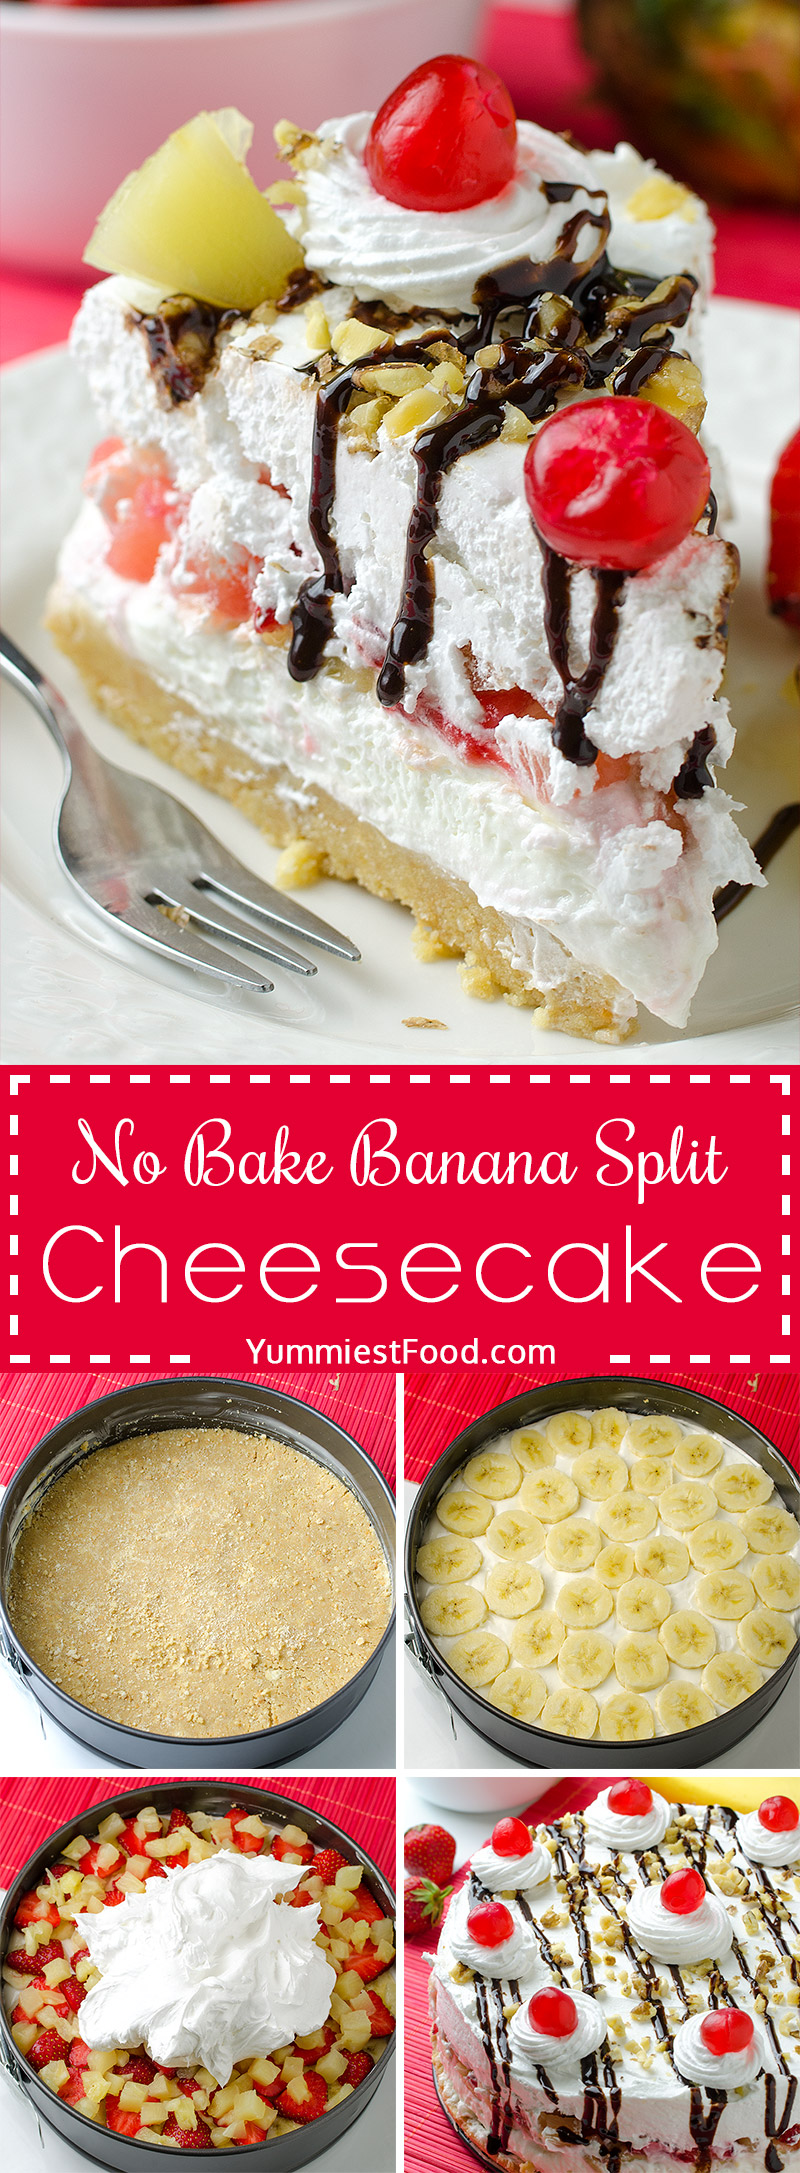 NO BAKE BANANA SPLIT CHEESECAKE - Easy and quick summer dessert recipe for refreshing sweet treat